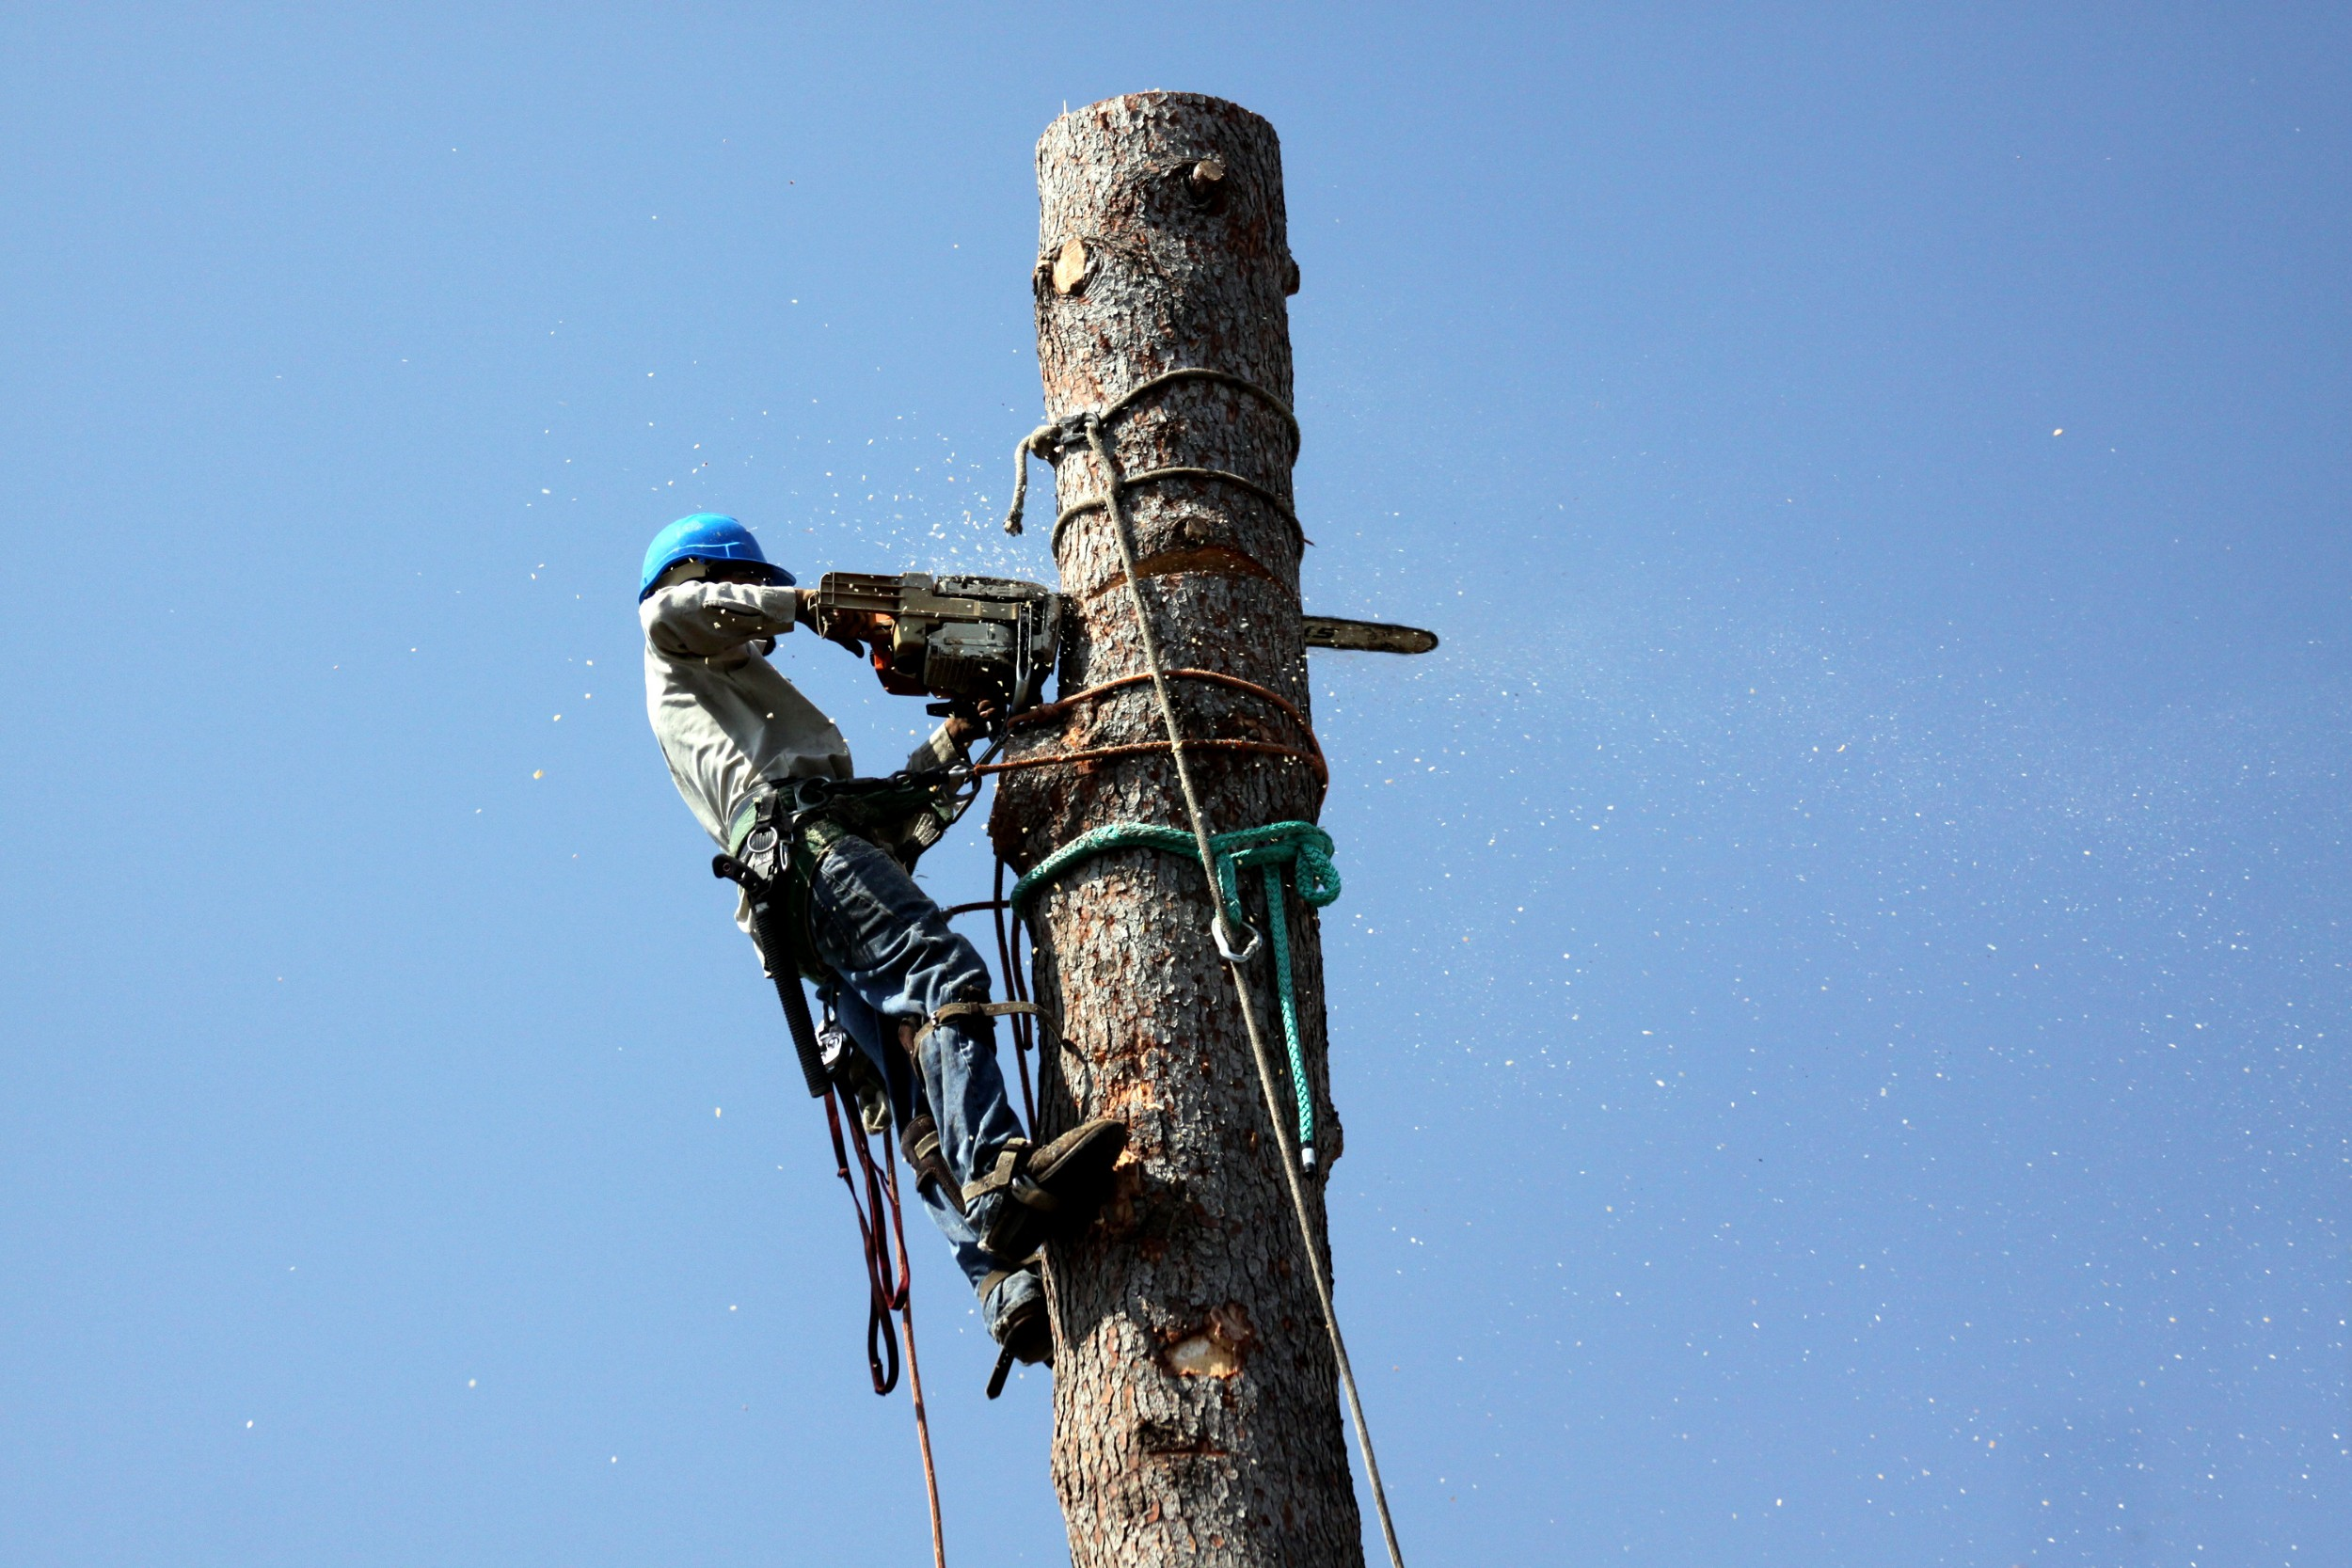 An Orlando Tree Service Company Can Help with Tree Removal and Land Clearing